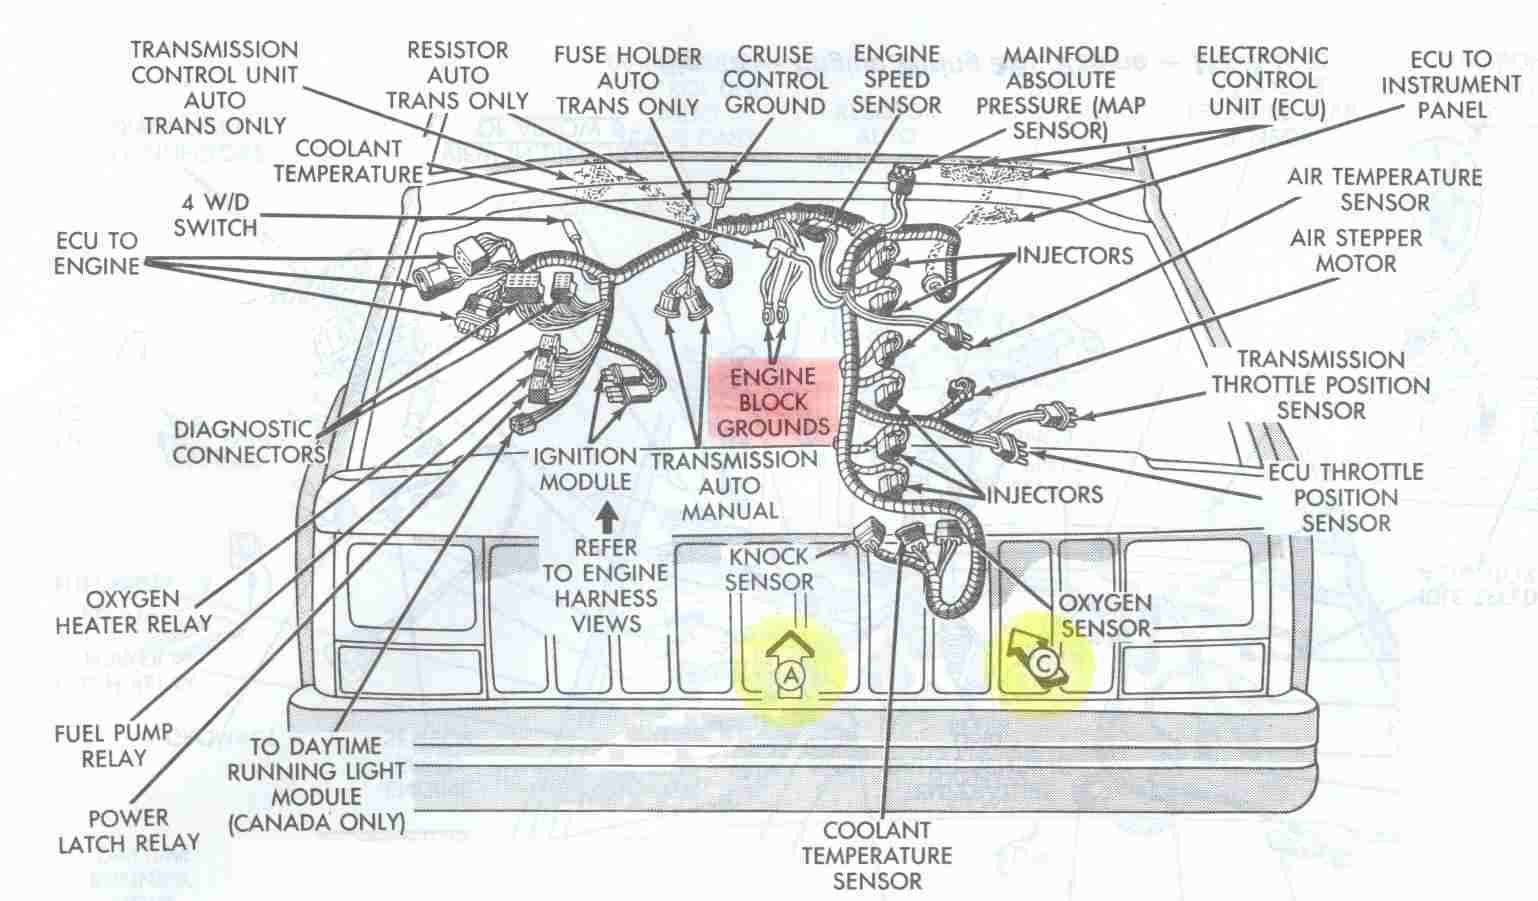 Engine Bay Schematic Showing Major Electrical Ground Points For 40l 3 Liter Dodge Diagram Jeep Cherokee Engines